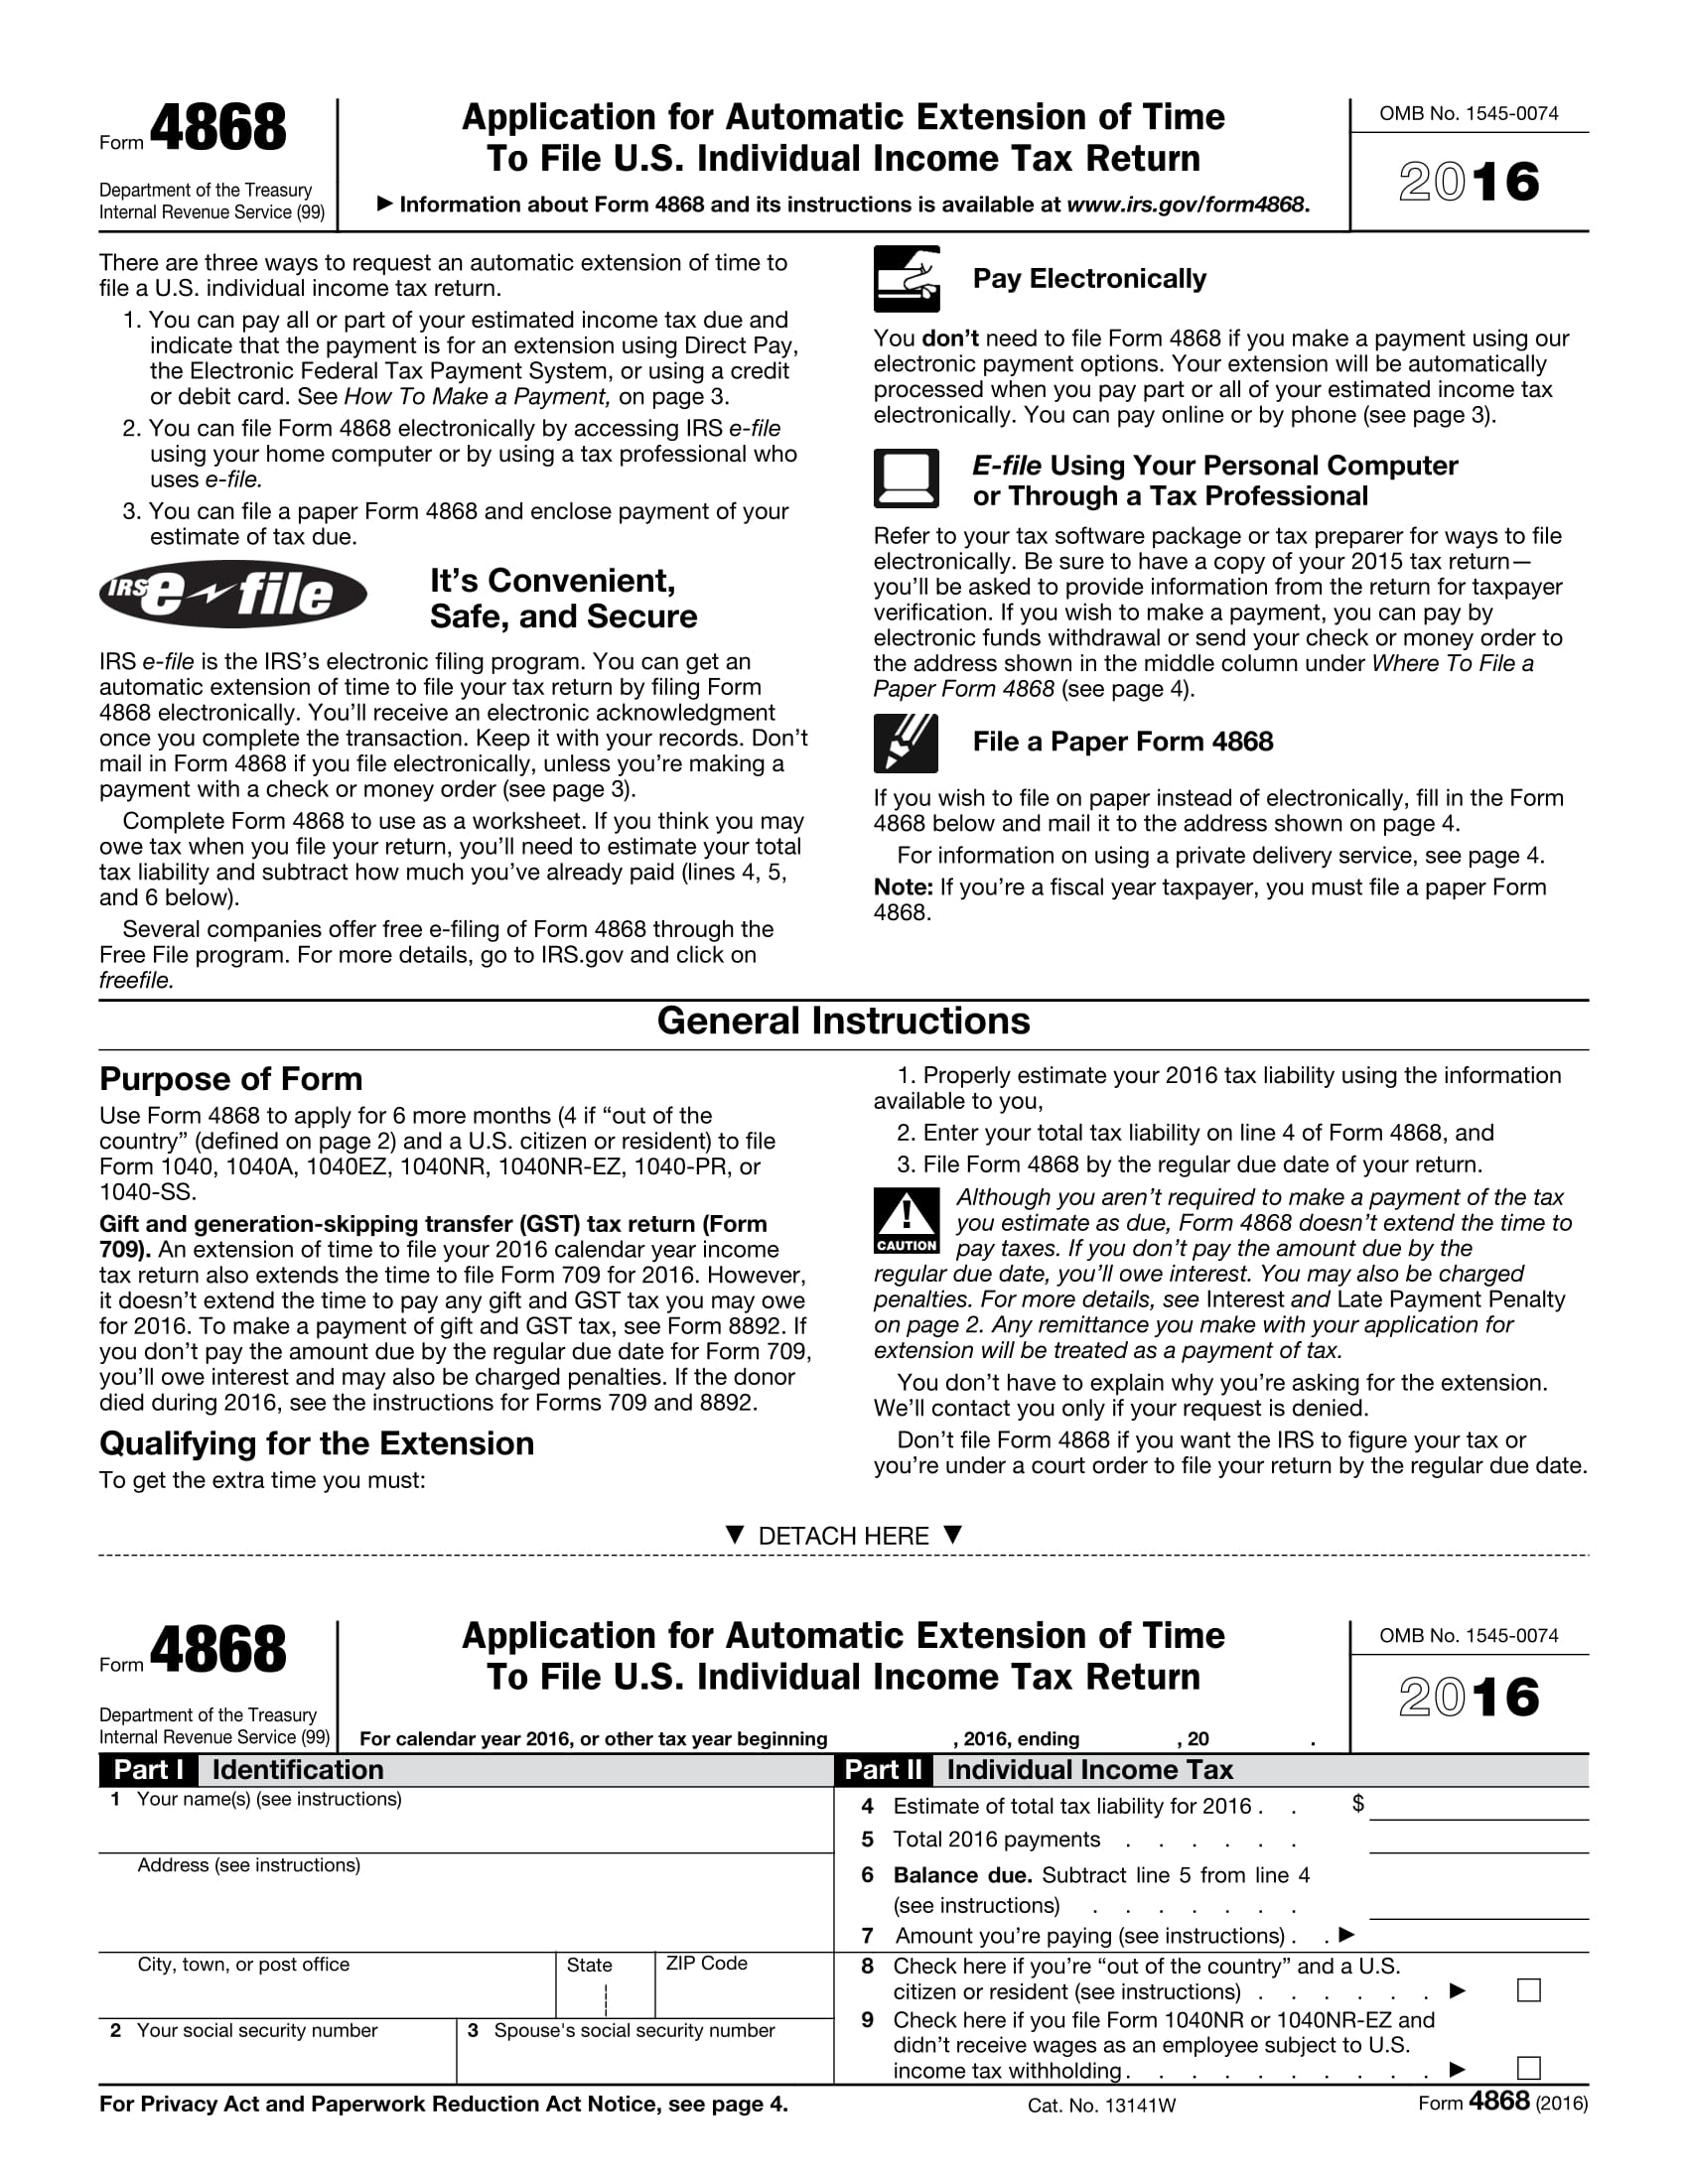 10 varieties of tax forms for employers and taxpayers income tax automatic extension form 1 irs details file format falaconquin